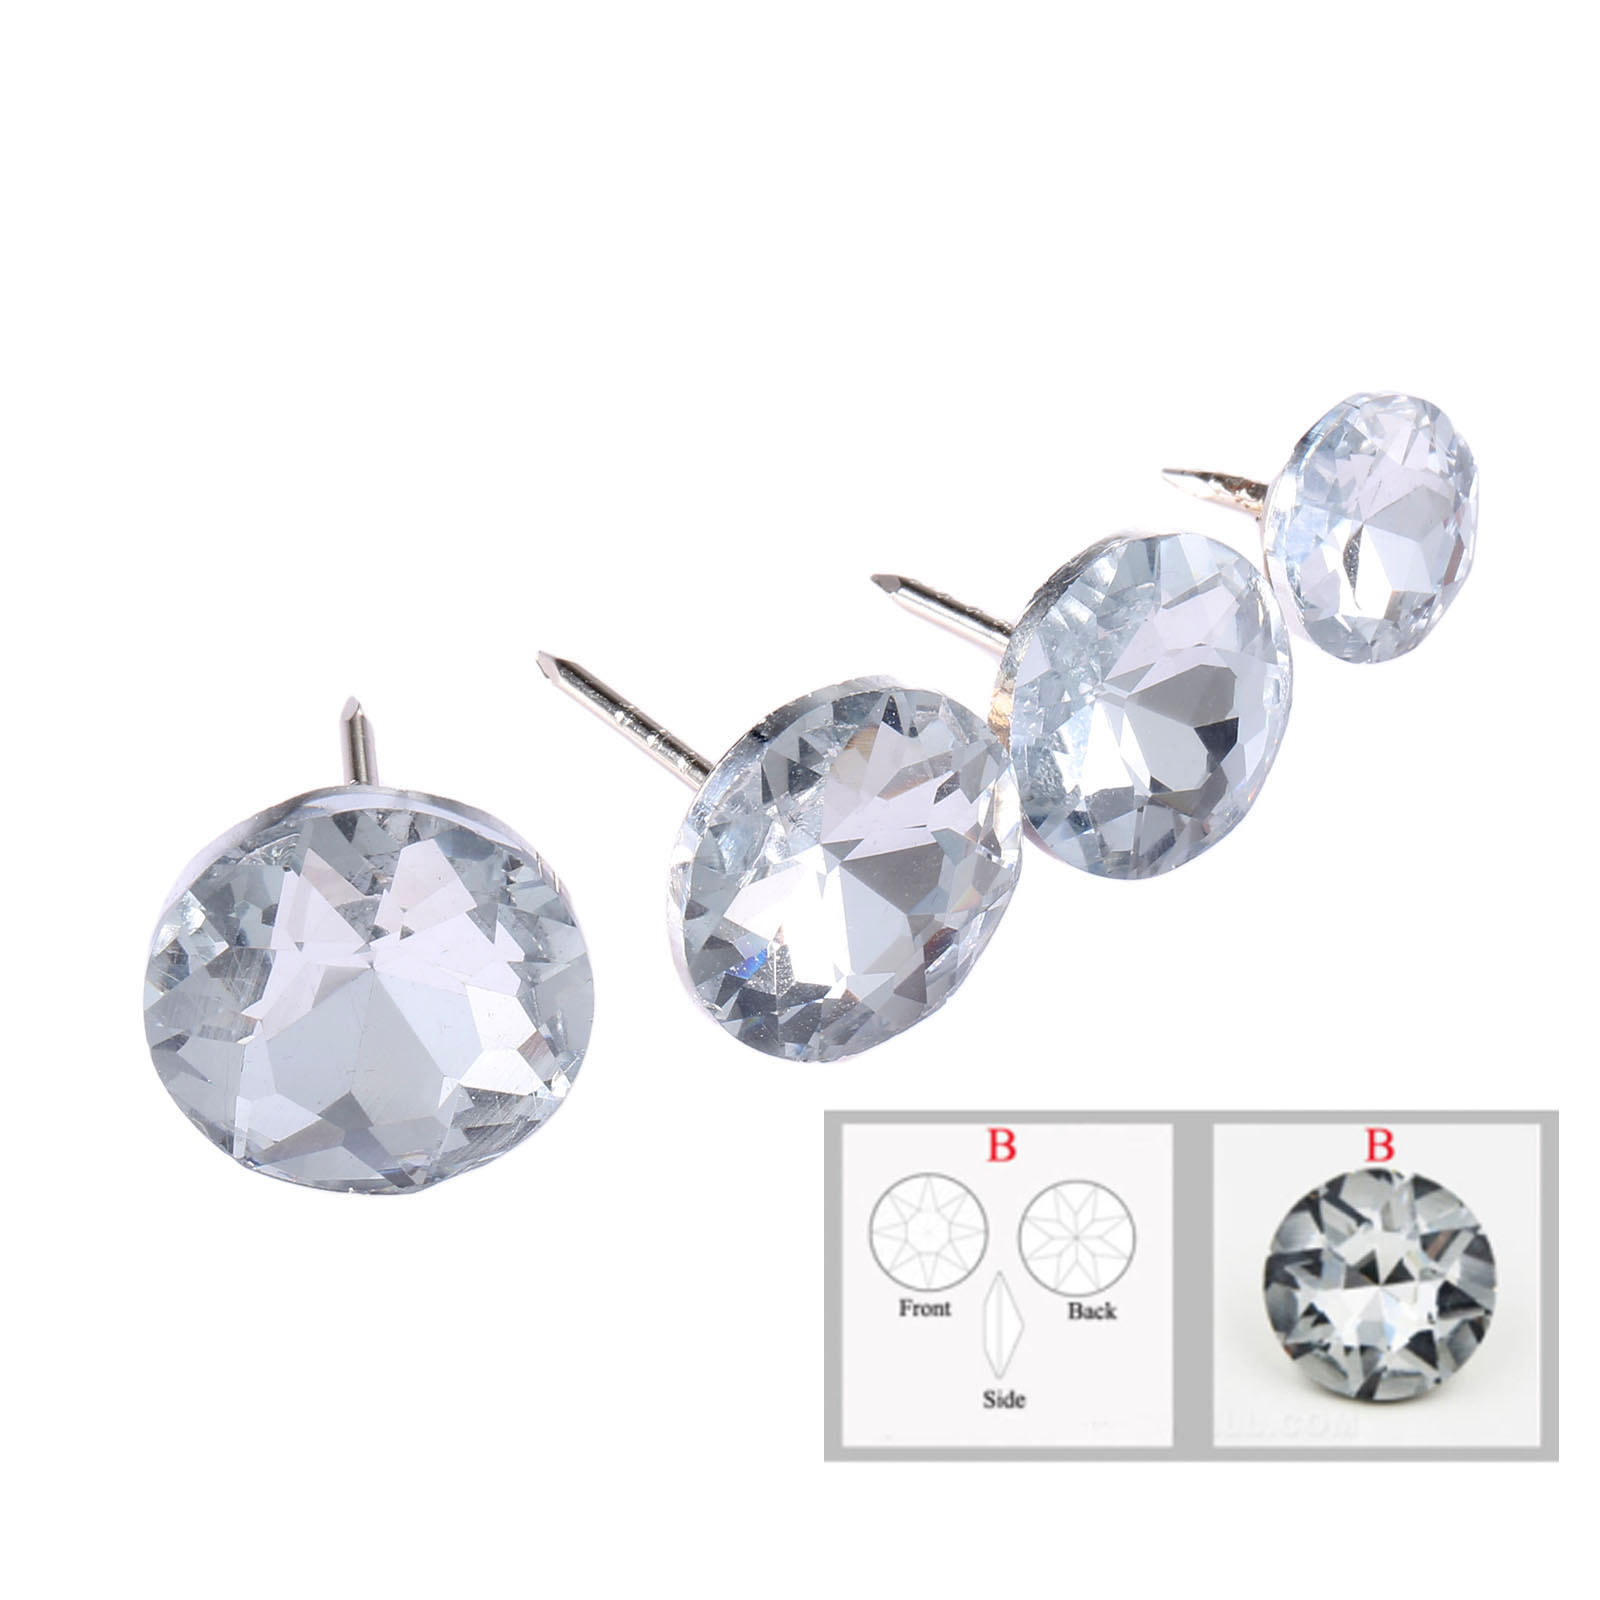 DRELD 10Pcs Diamond Crystal Upholstery Nails Buttons Tacks Studs Pins 14/16/18/22mm Sofa Wall Decoration Furniture Accessory